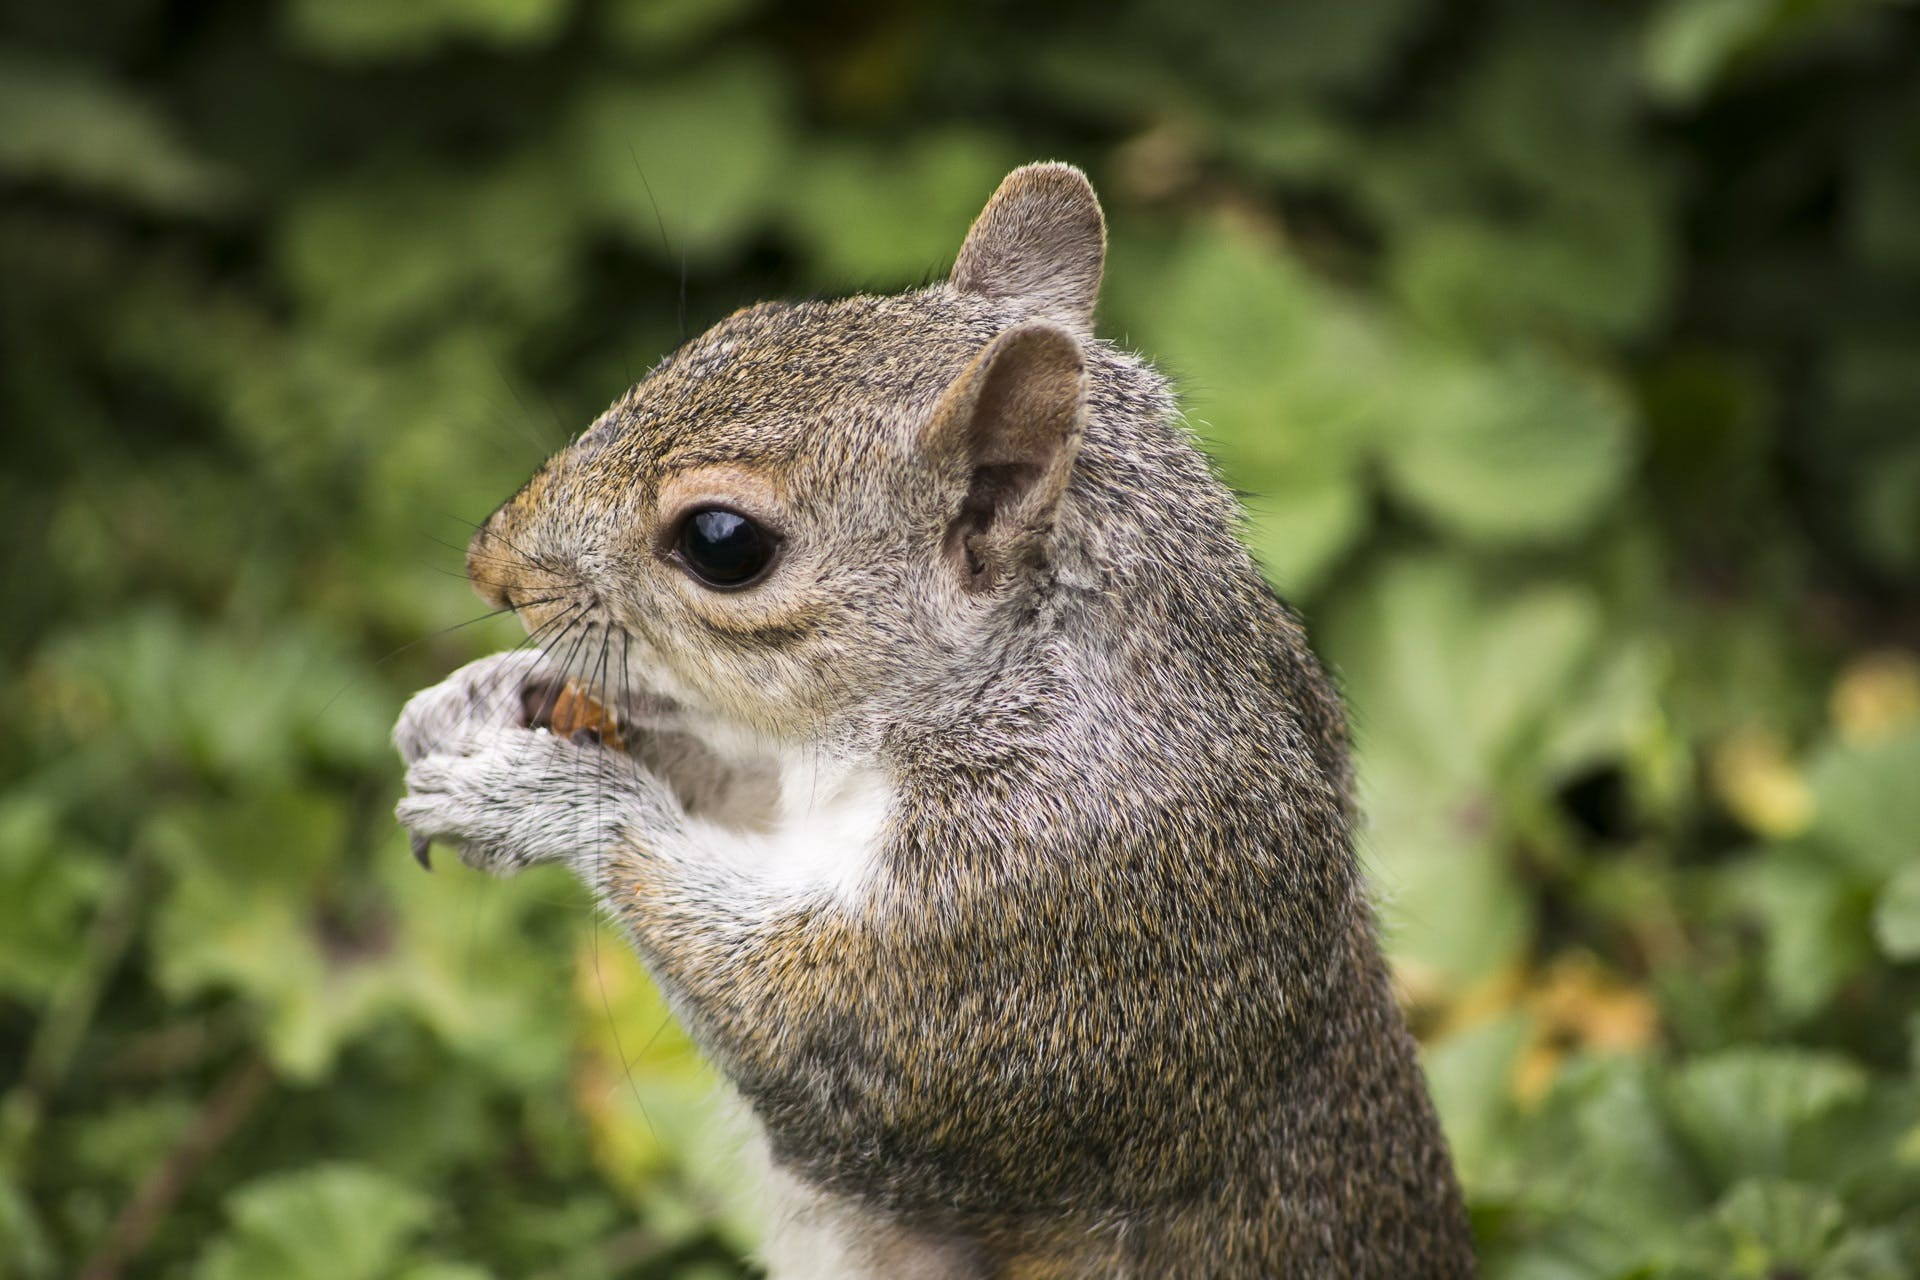 Grey and White Squirrel Surrounded by Green Plants